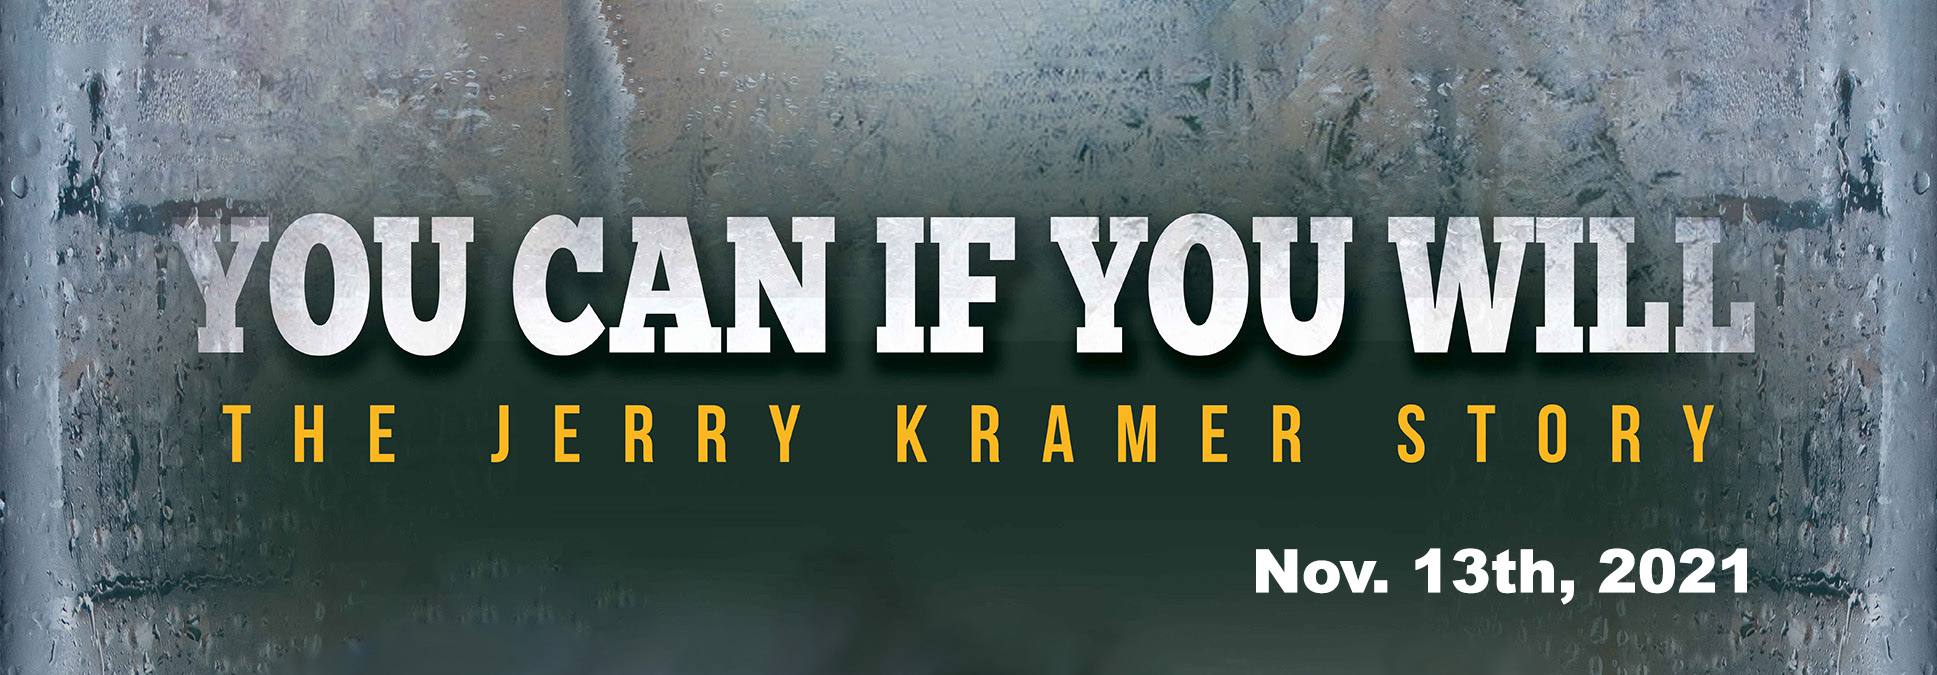 Jerry Kramer at the Marcus performing Arts Center in Milwaukee, WI